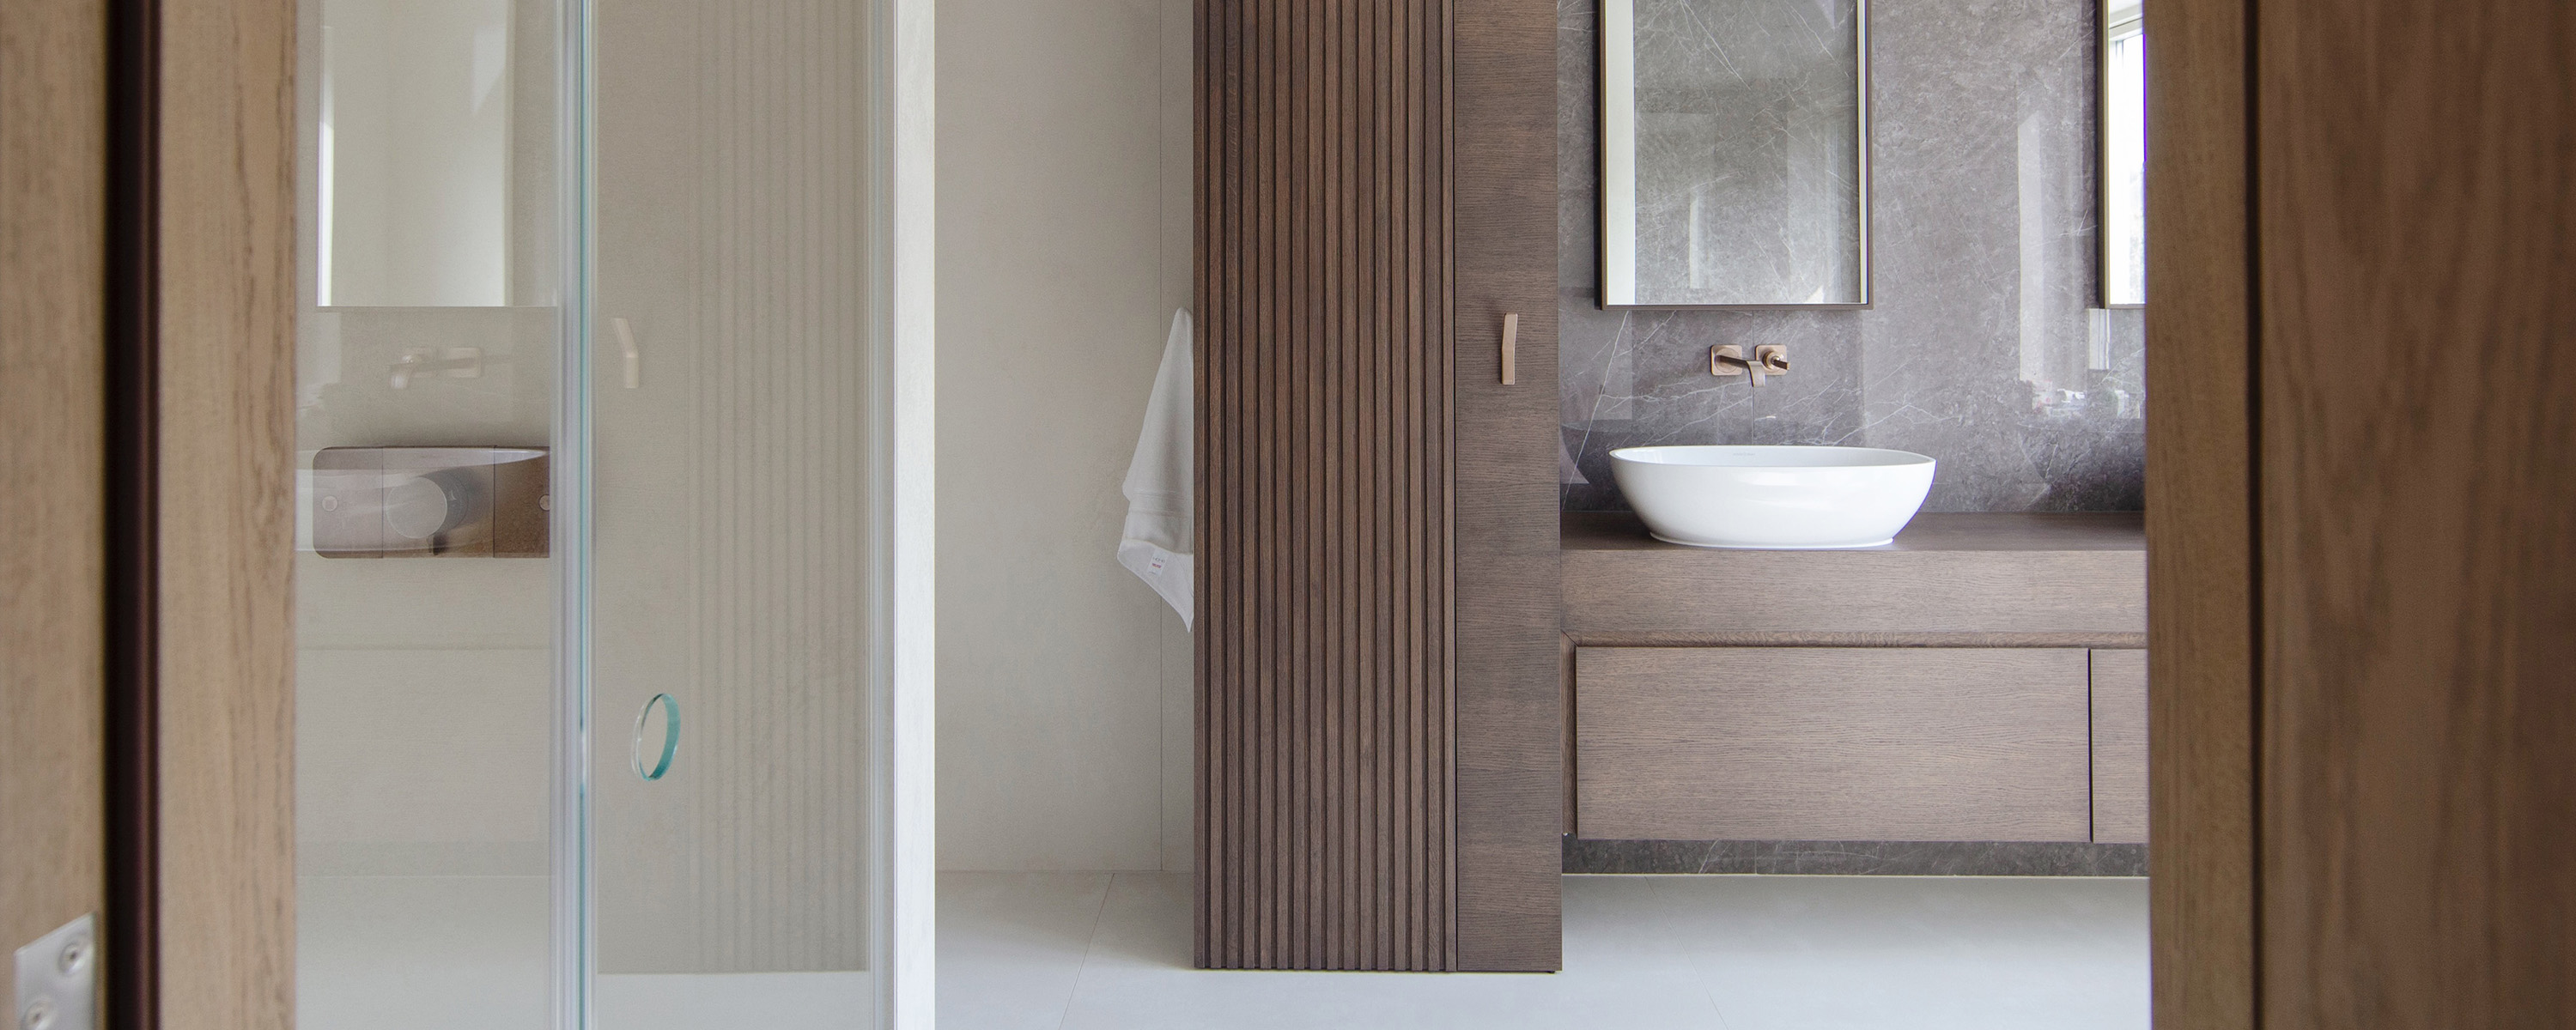 Residential interior design for spacious bathroom, Brockley, London